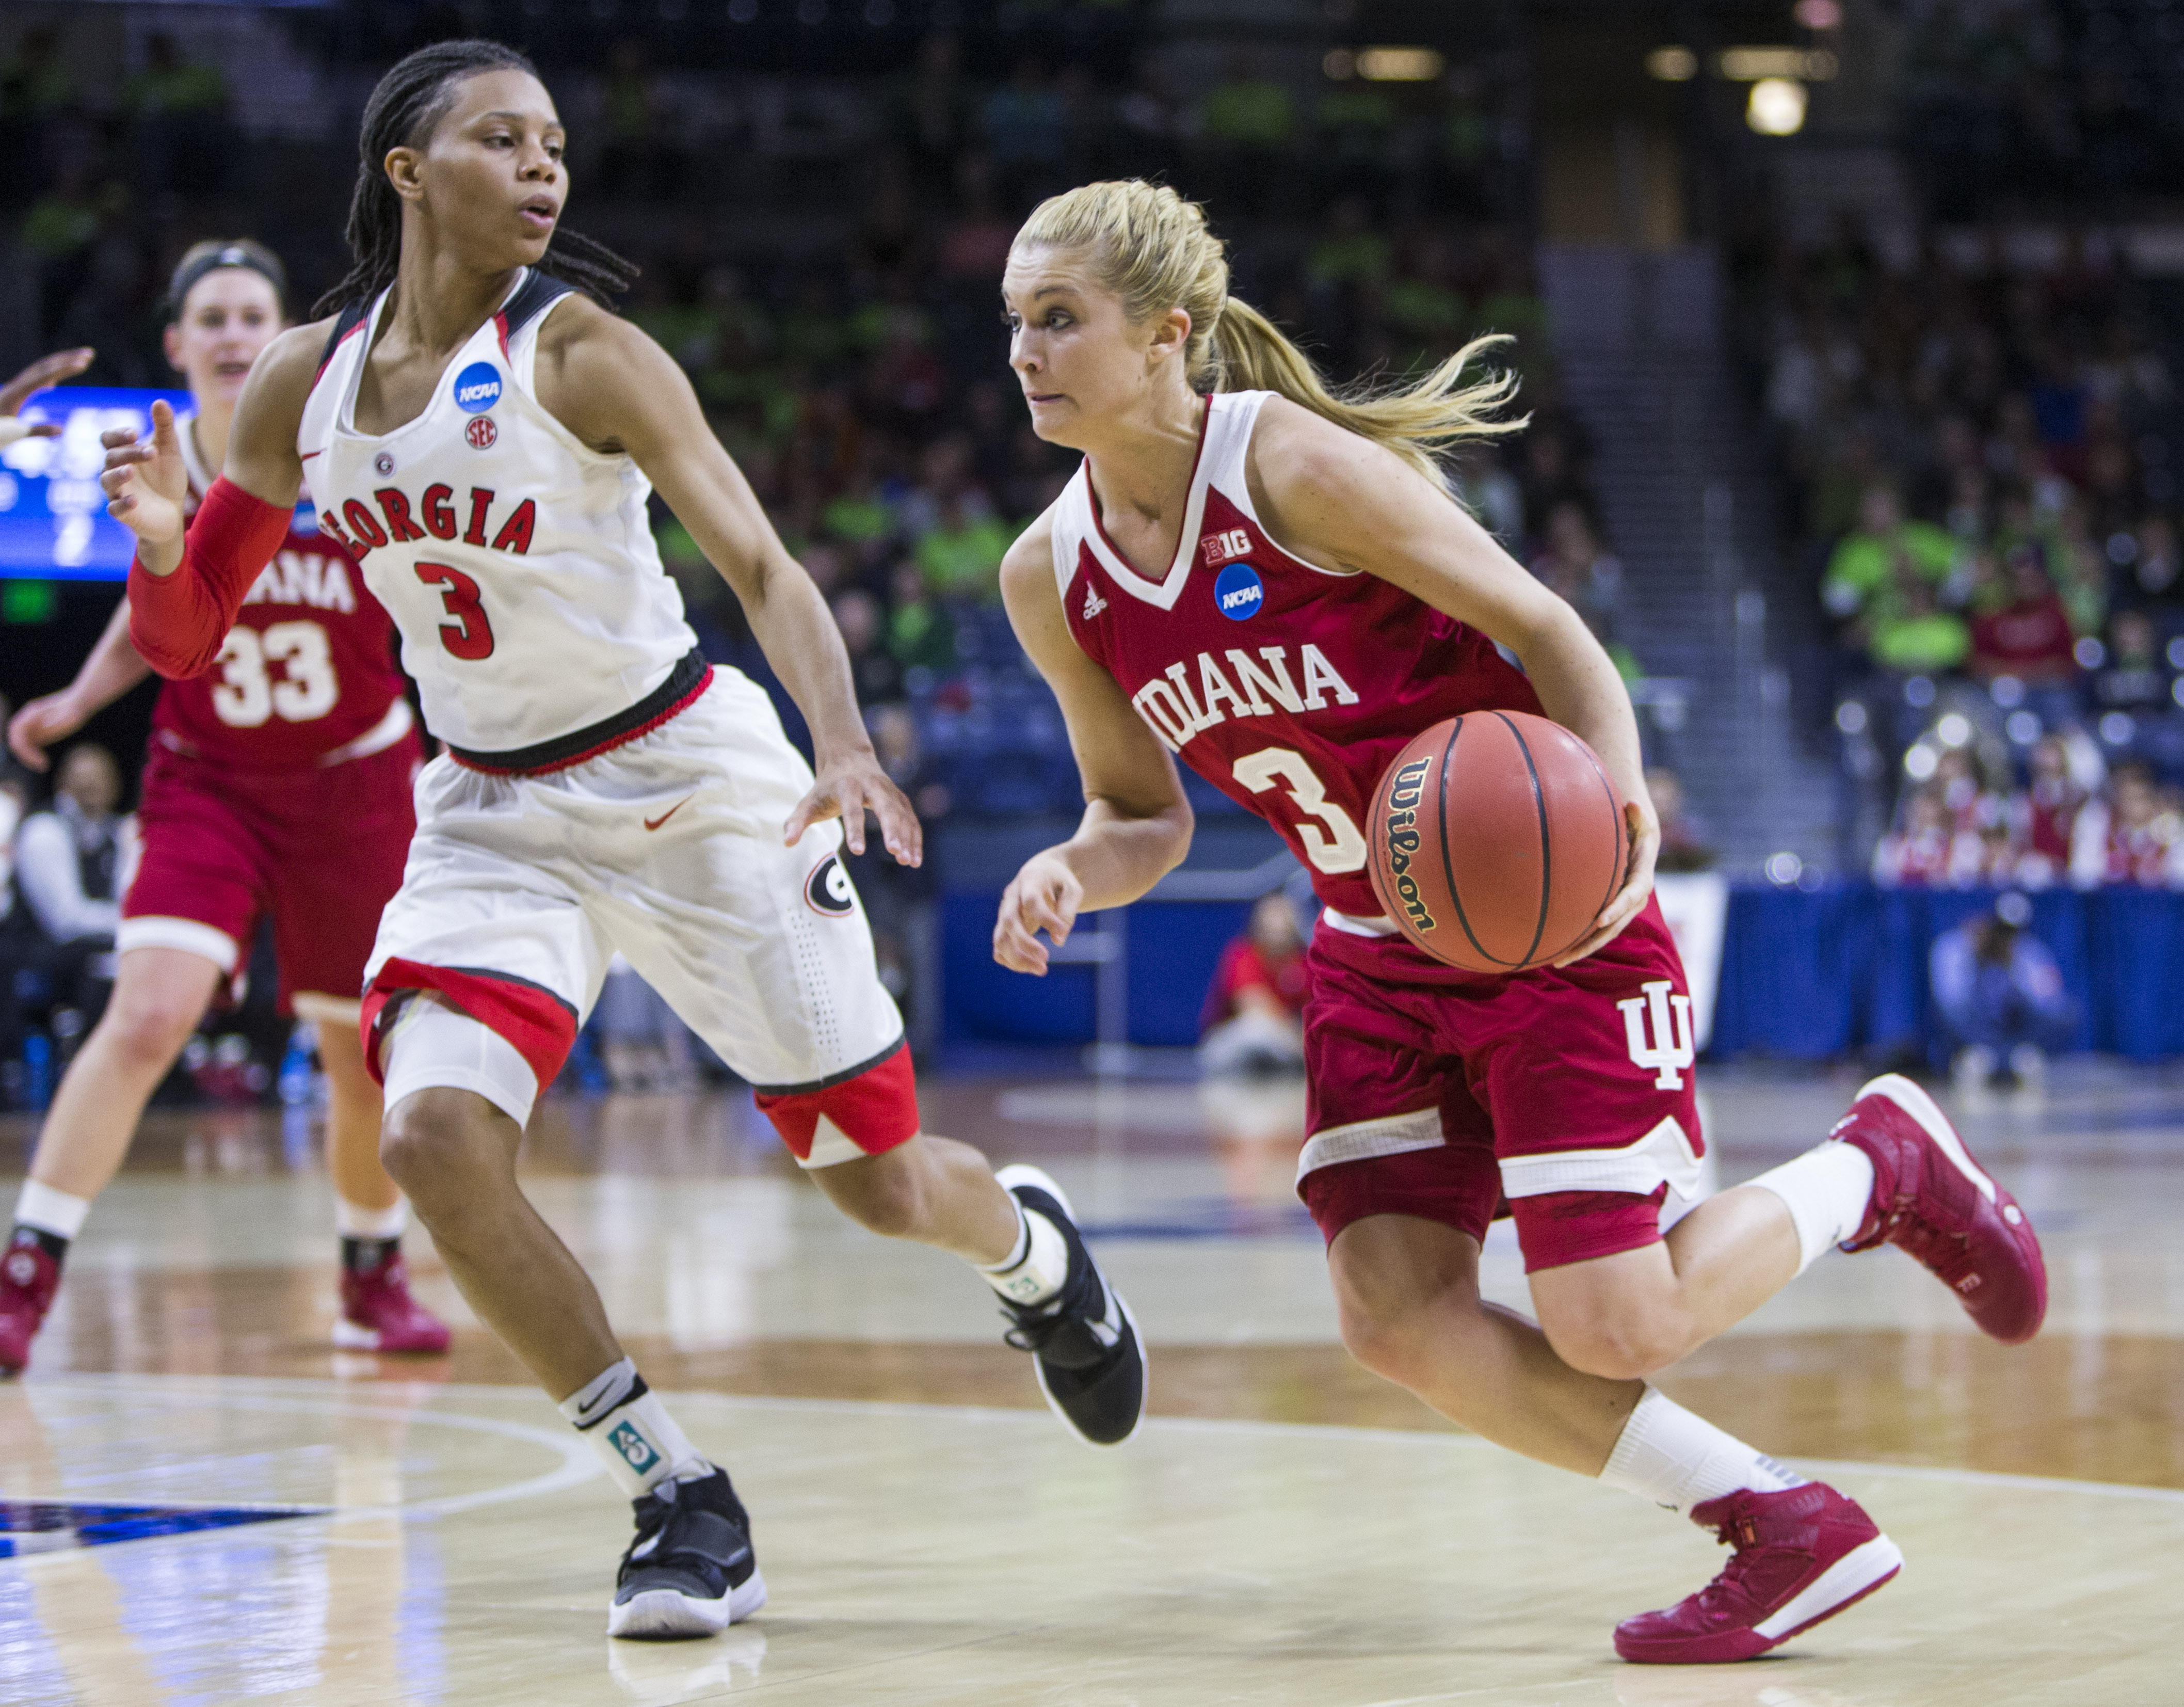 Indianas TyraBuss (3), right, drives by Georgias Tiaria Griffin (3) during the first half of a first-round women's college basketball game in the NCAA Tournament, Saturday, March 19, 2016, in South Bend, Ind. (AP Photo/Robert Franklin)